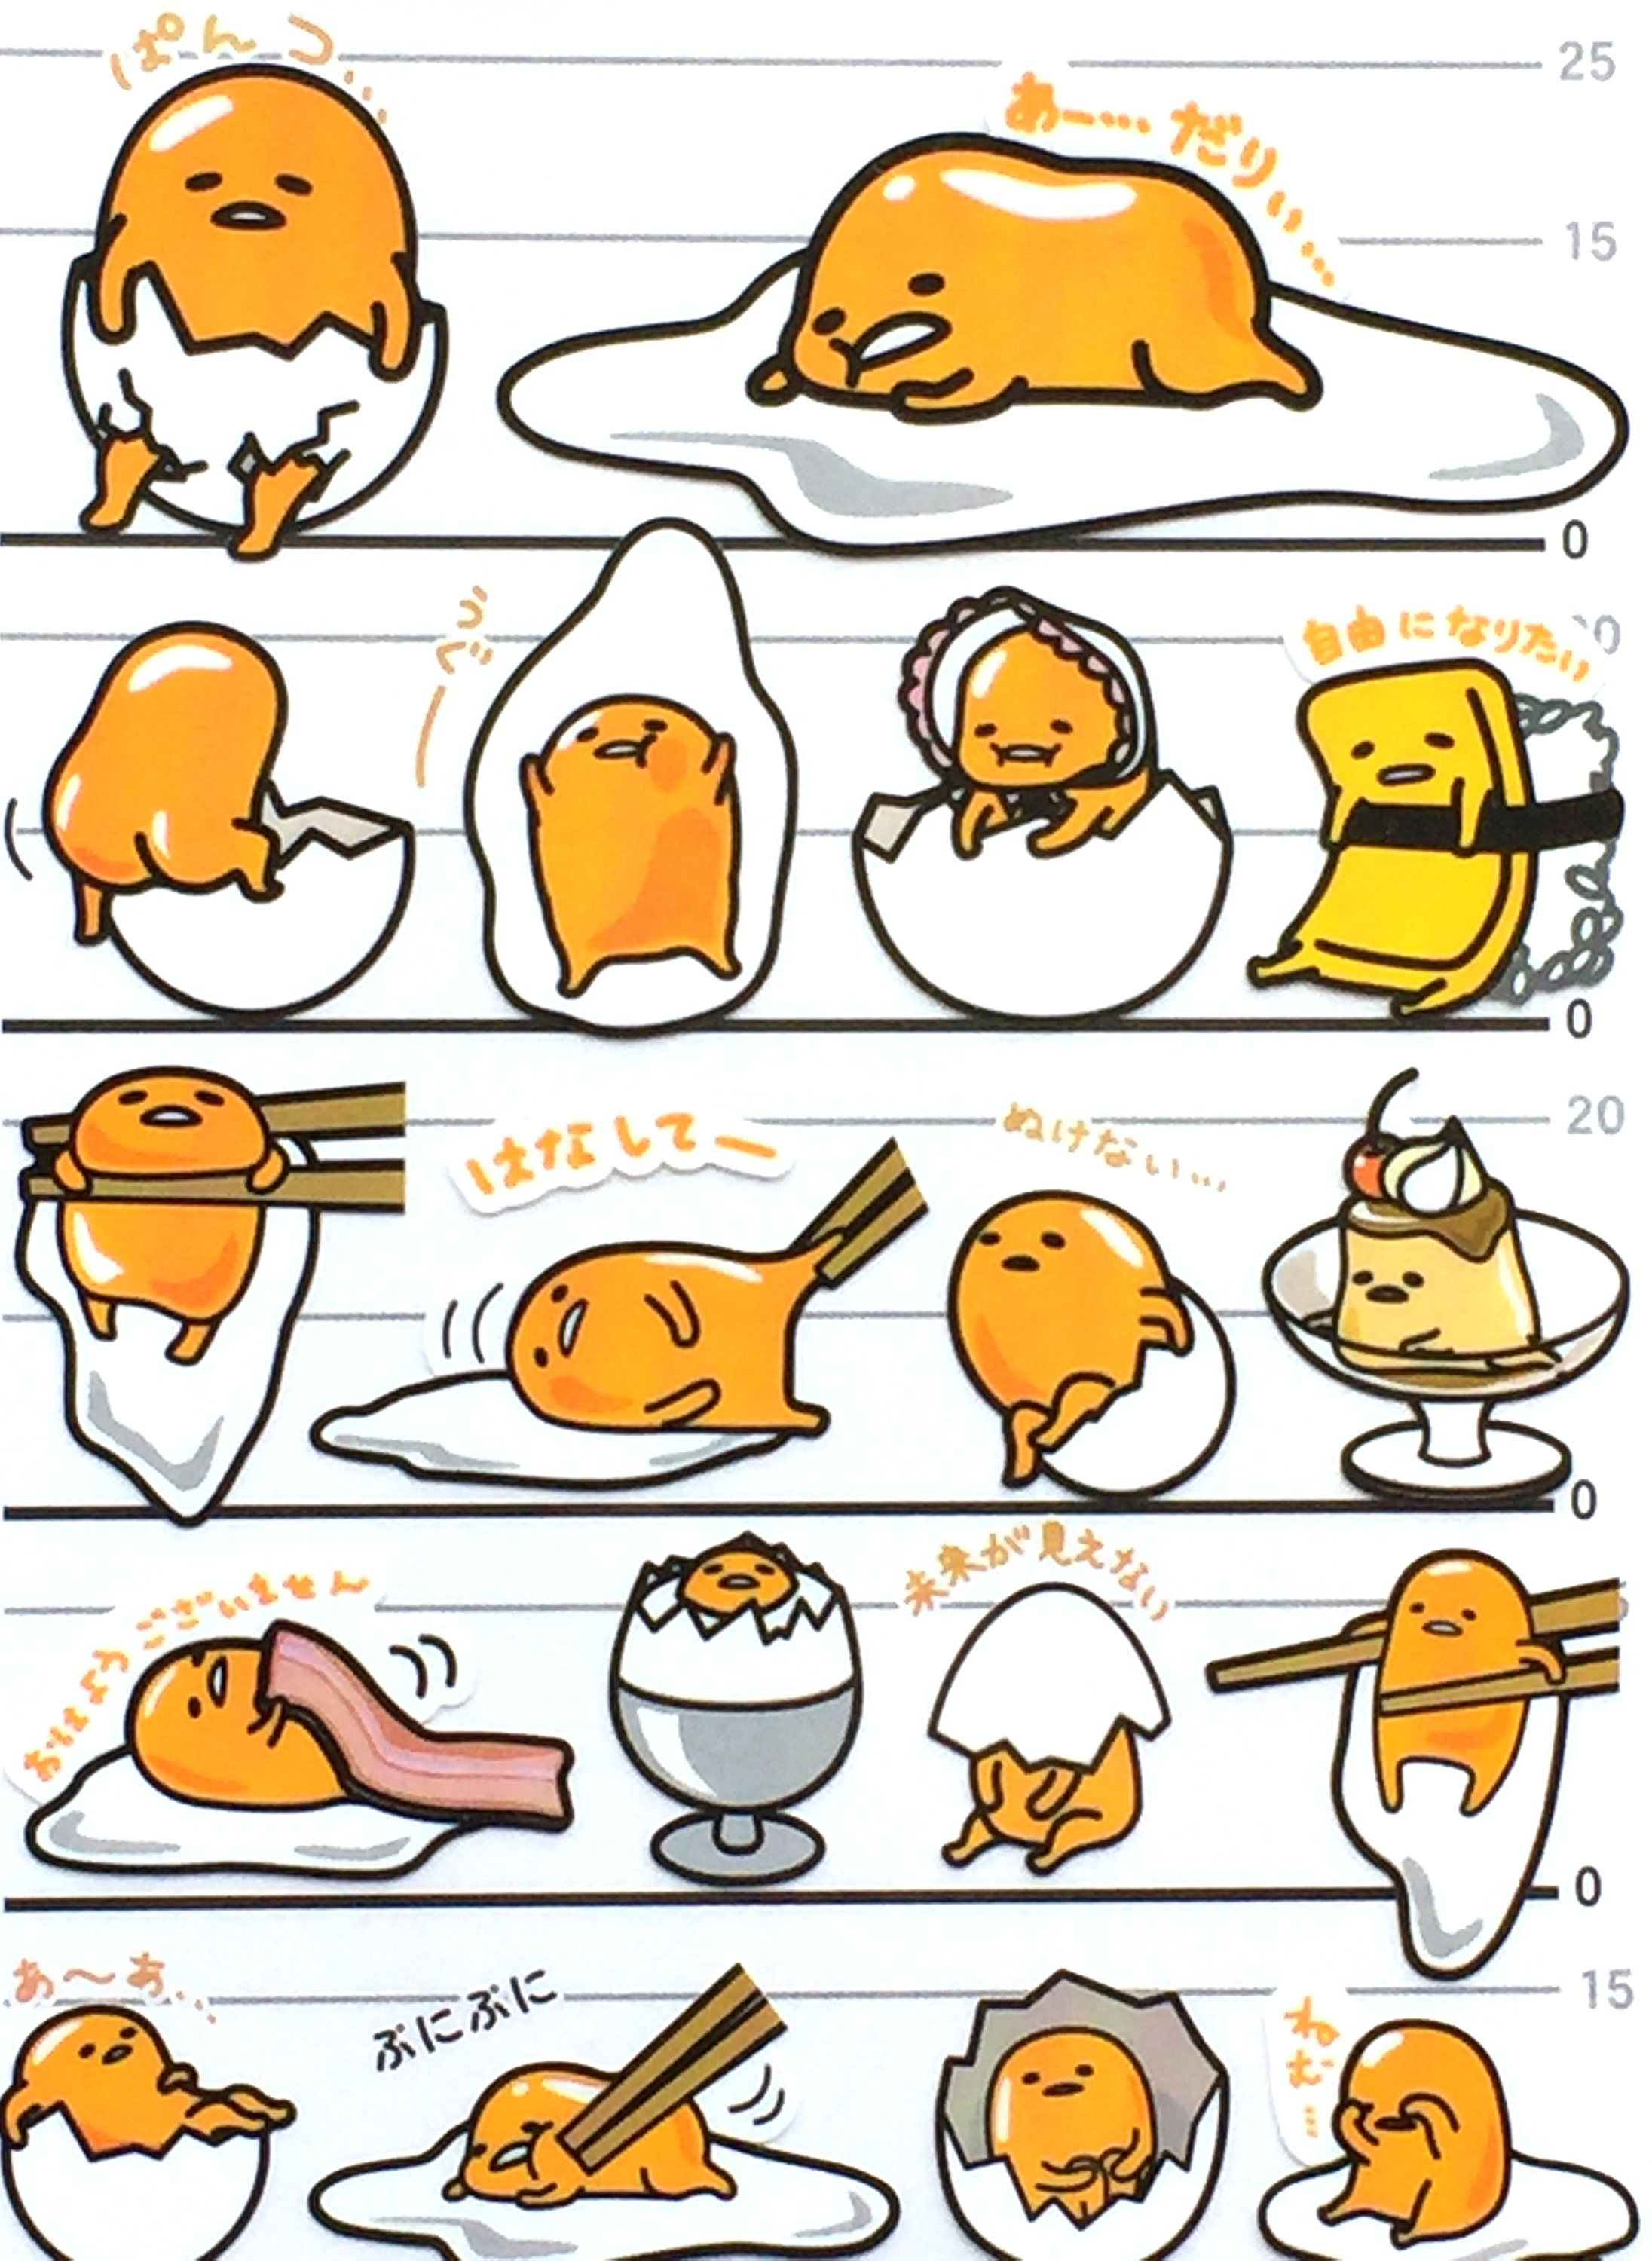 Now selling Egg Stickers Egg Yolk Baby Japanese